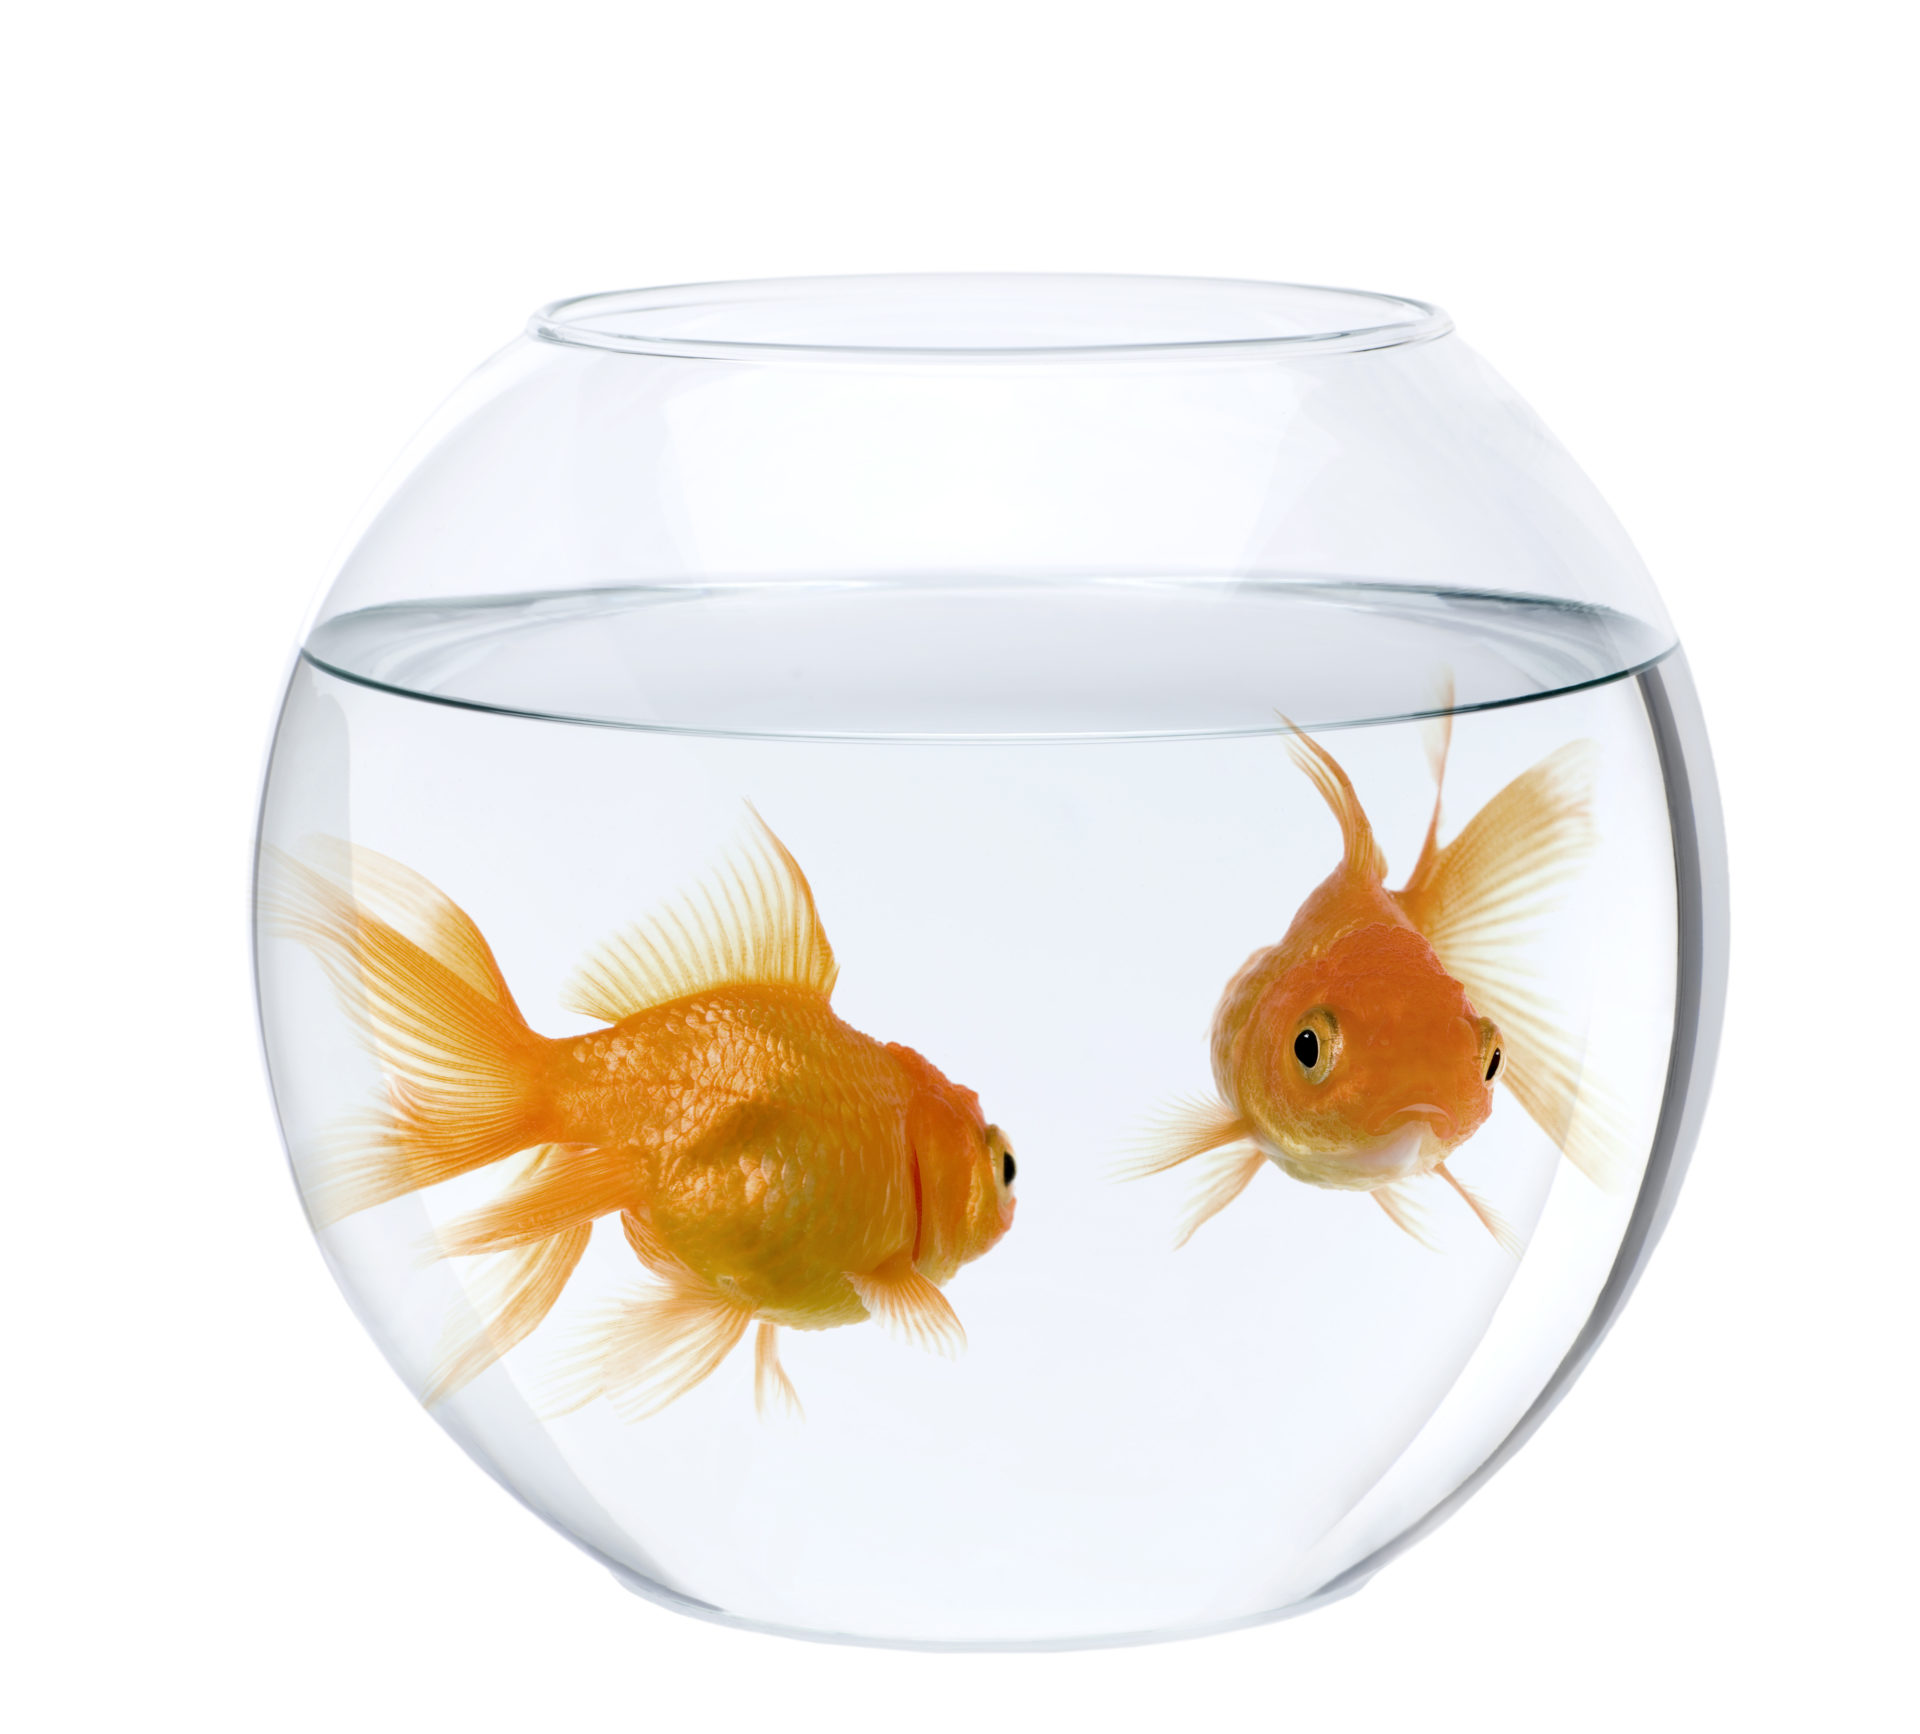 Two goldfish in fish bowl, in front of white background